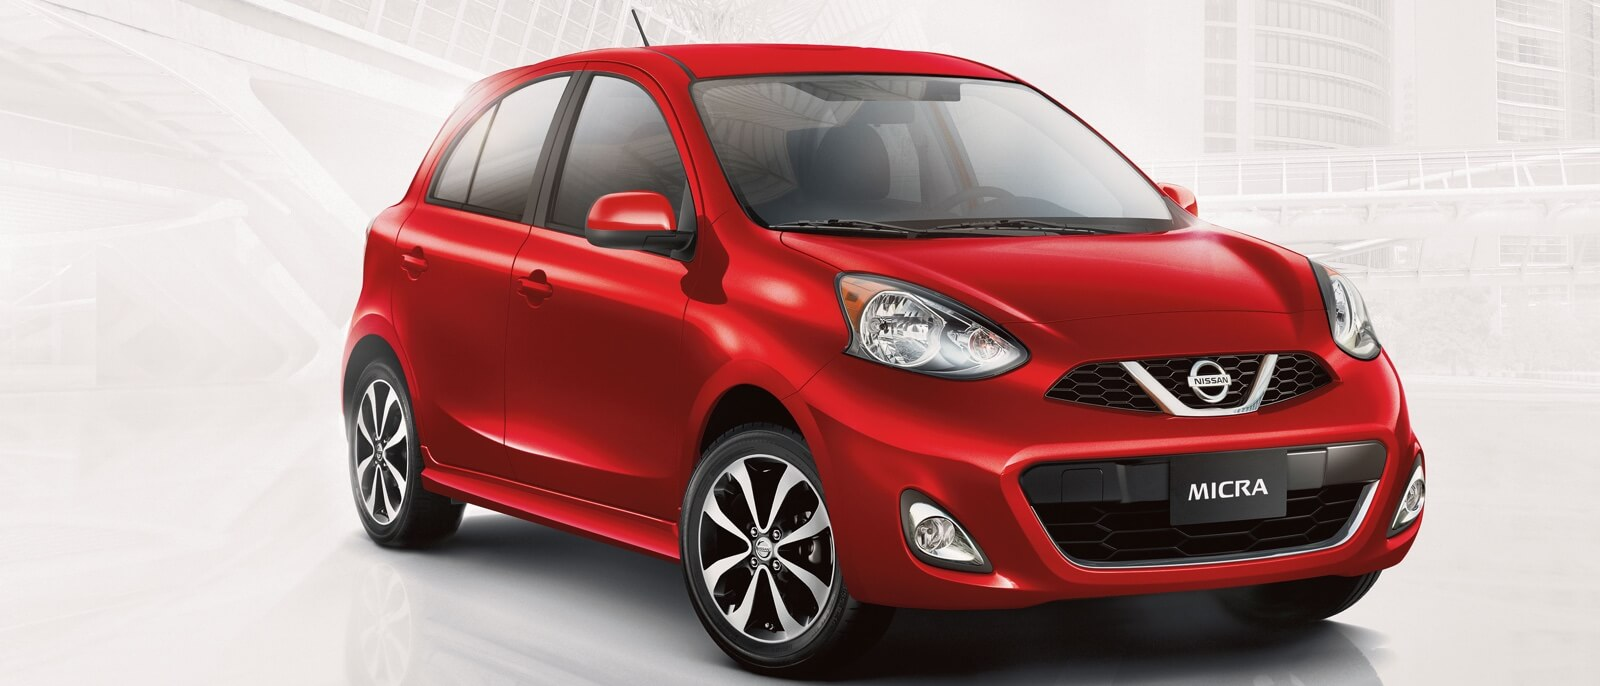 2016 Nissan Micra red exterior